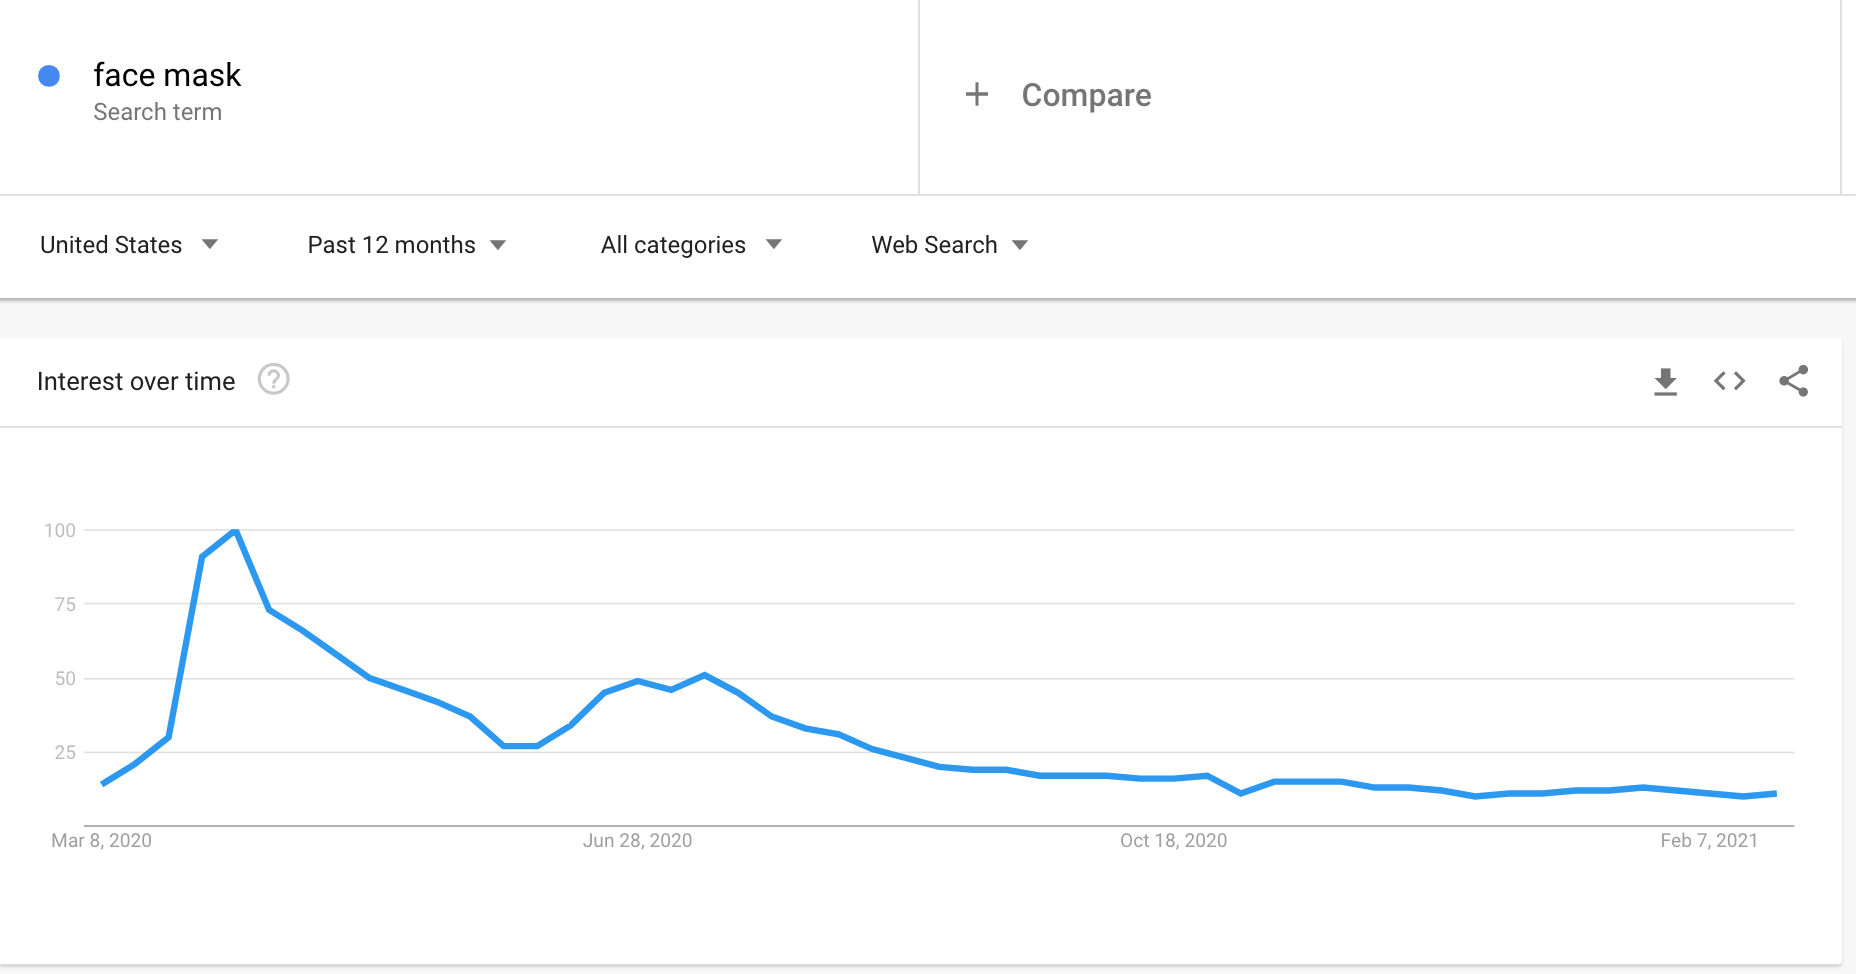 Google Trends graph showing the interest in face masks